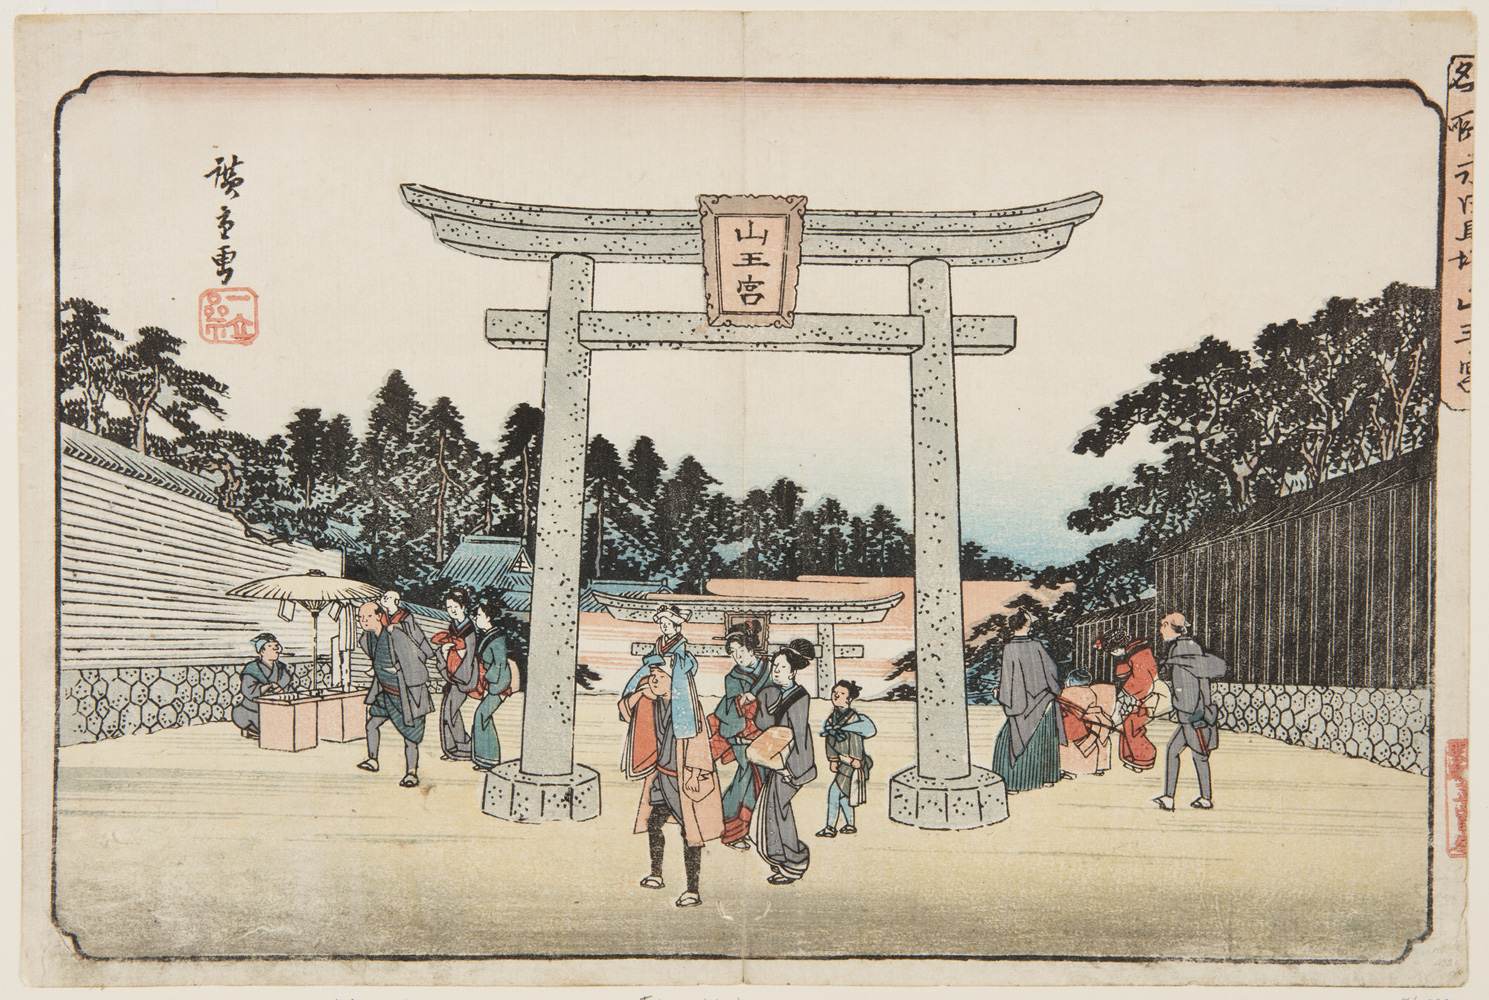 Sanno Shrine at the Nagata Riding Grounds. Illustration of a group of Japanese people in traditional japanese dress walk through a shrine